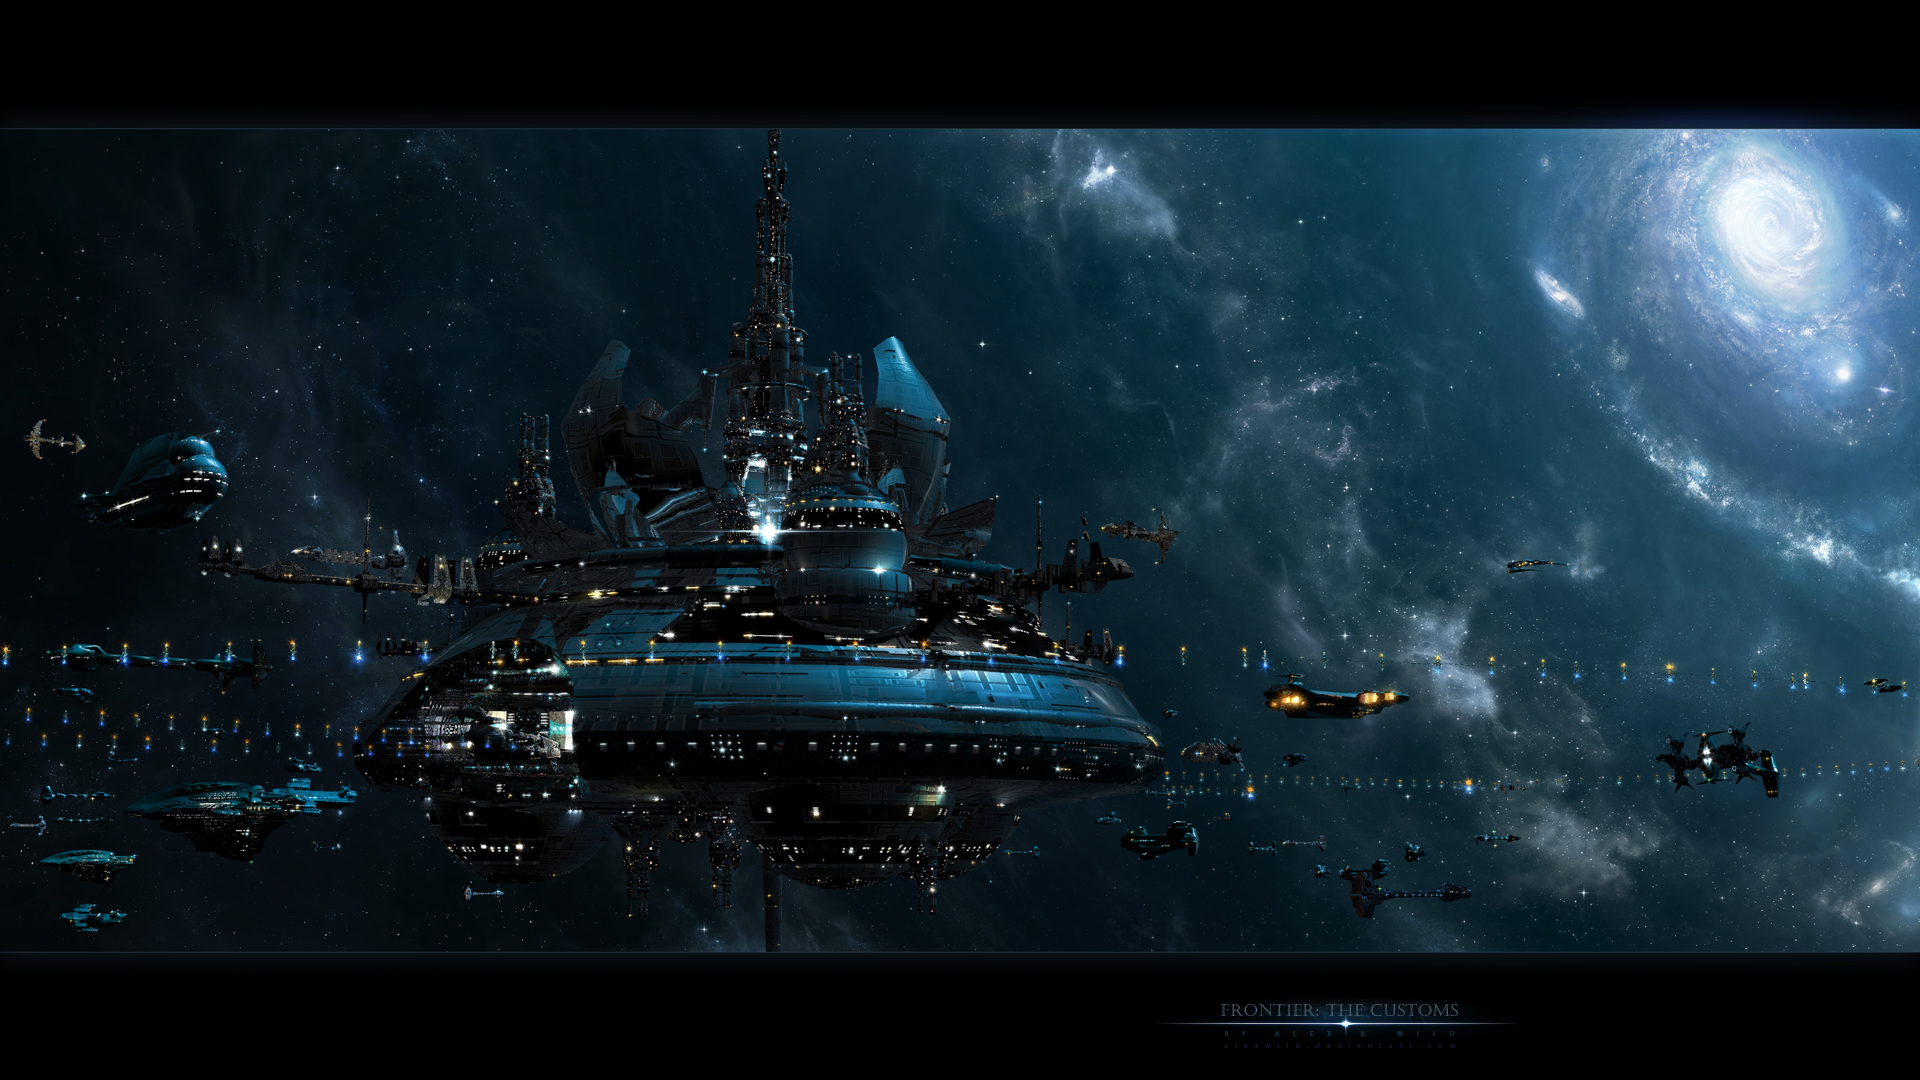 picture orbital stations space fantasy technics fantasy 1920x1080